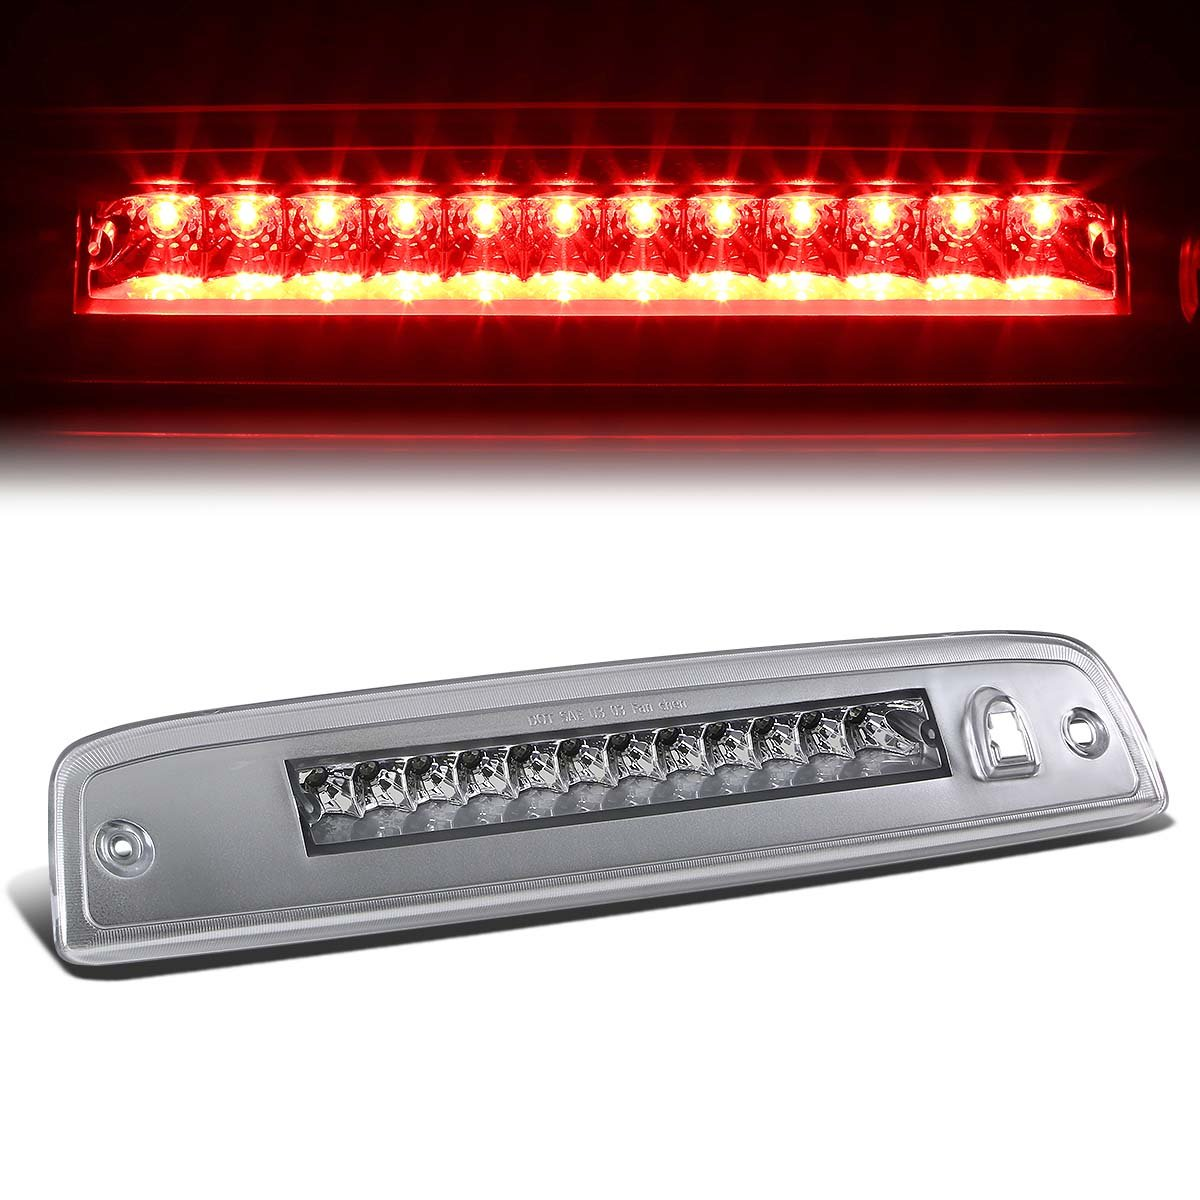 For Ford Expedition U222-U324 / Lincoln Navigator U228-U326 High Mount LED 3rd Brake Light (Chrome Housing) Auto Dynasty